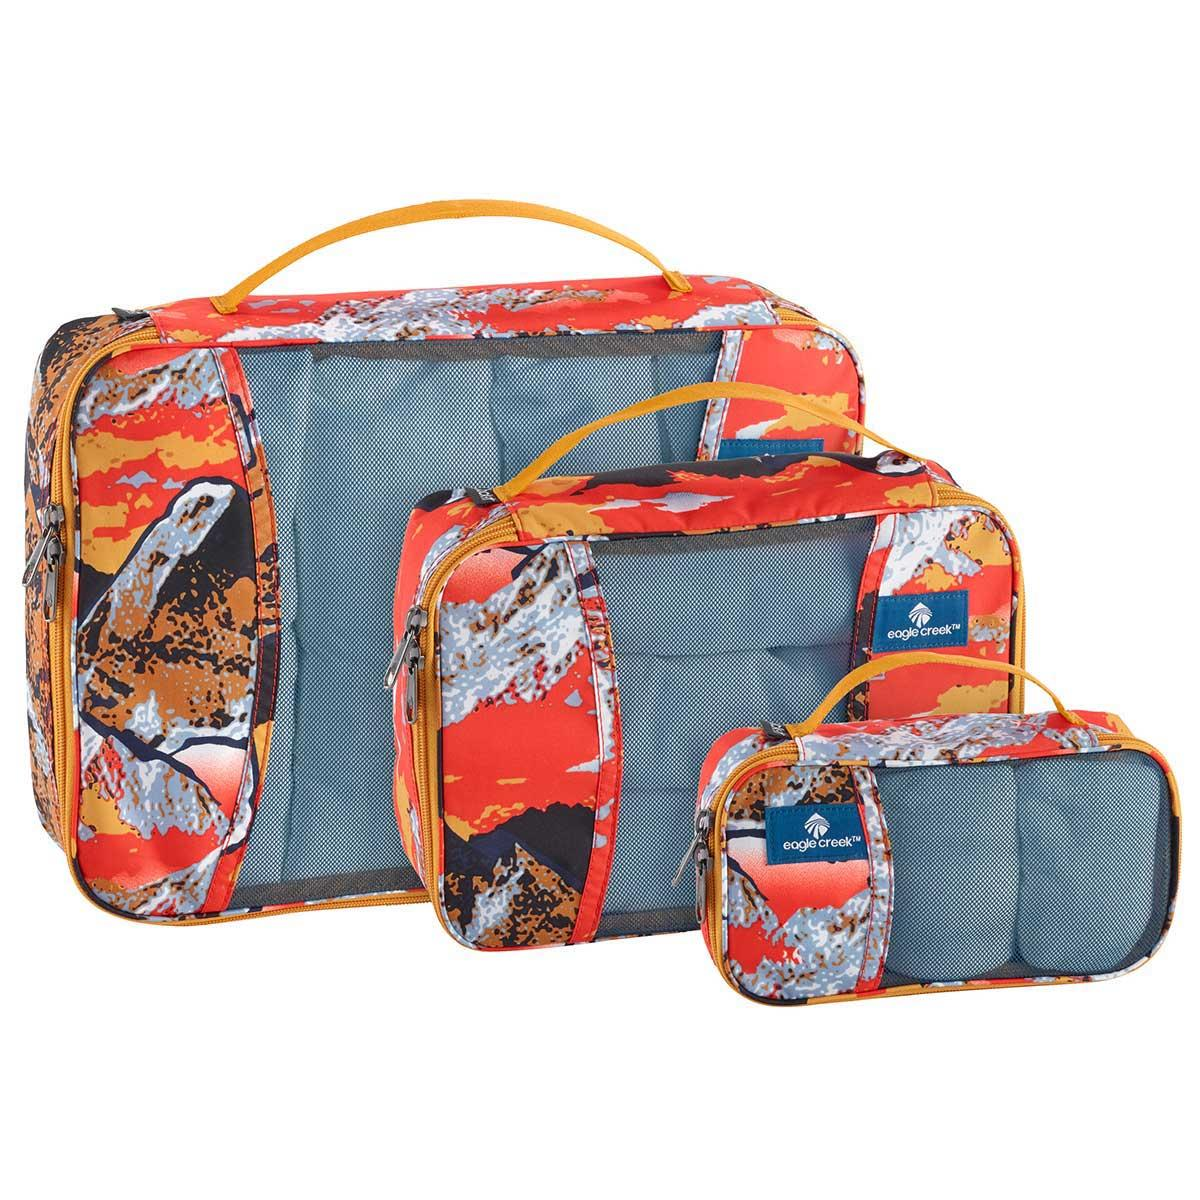 Eagle Creek Pack-It Original Cube Set XS/S/M - Sueno Andes Edition in Suenos Andes